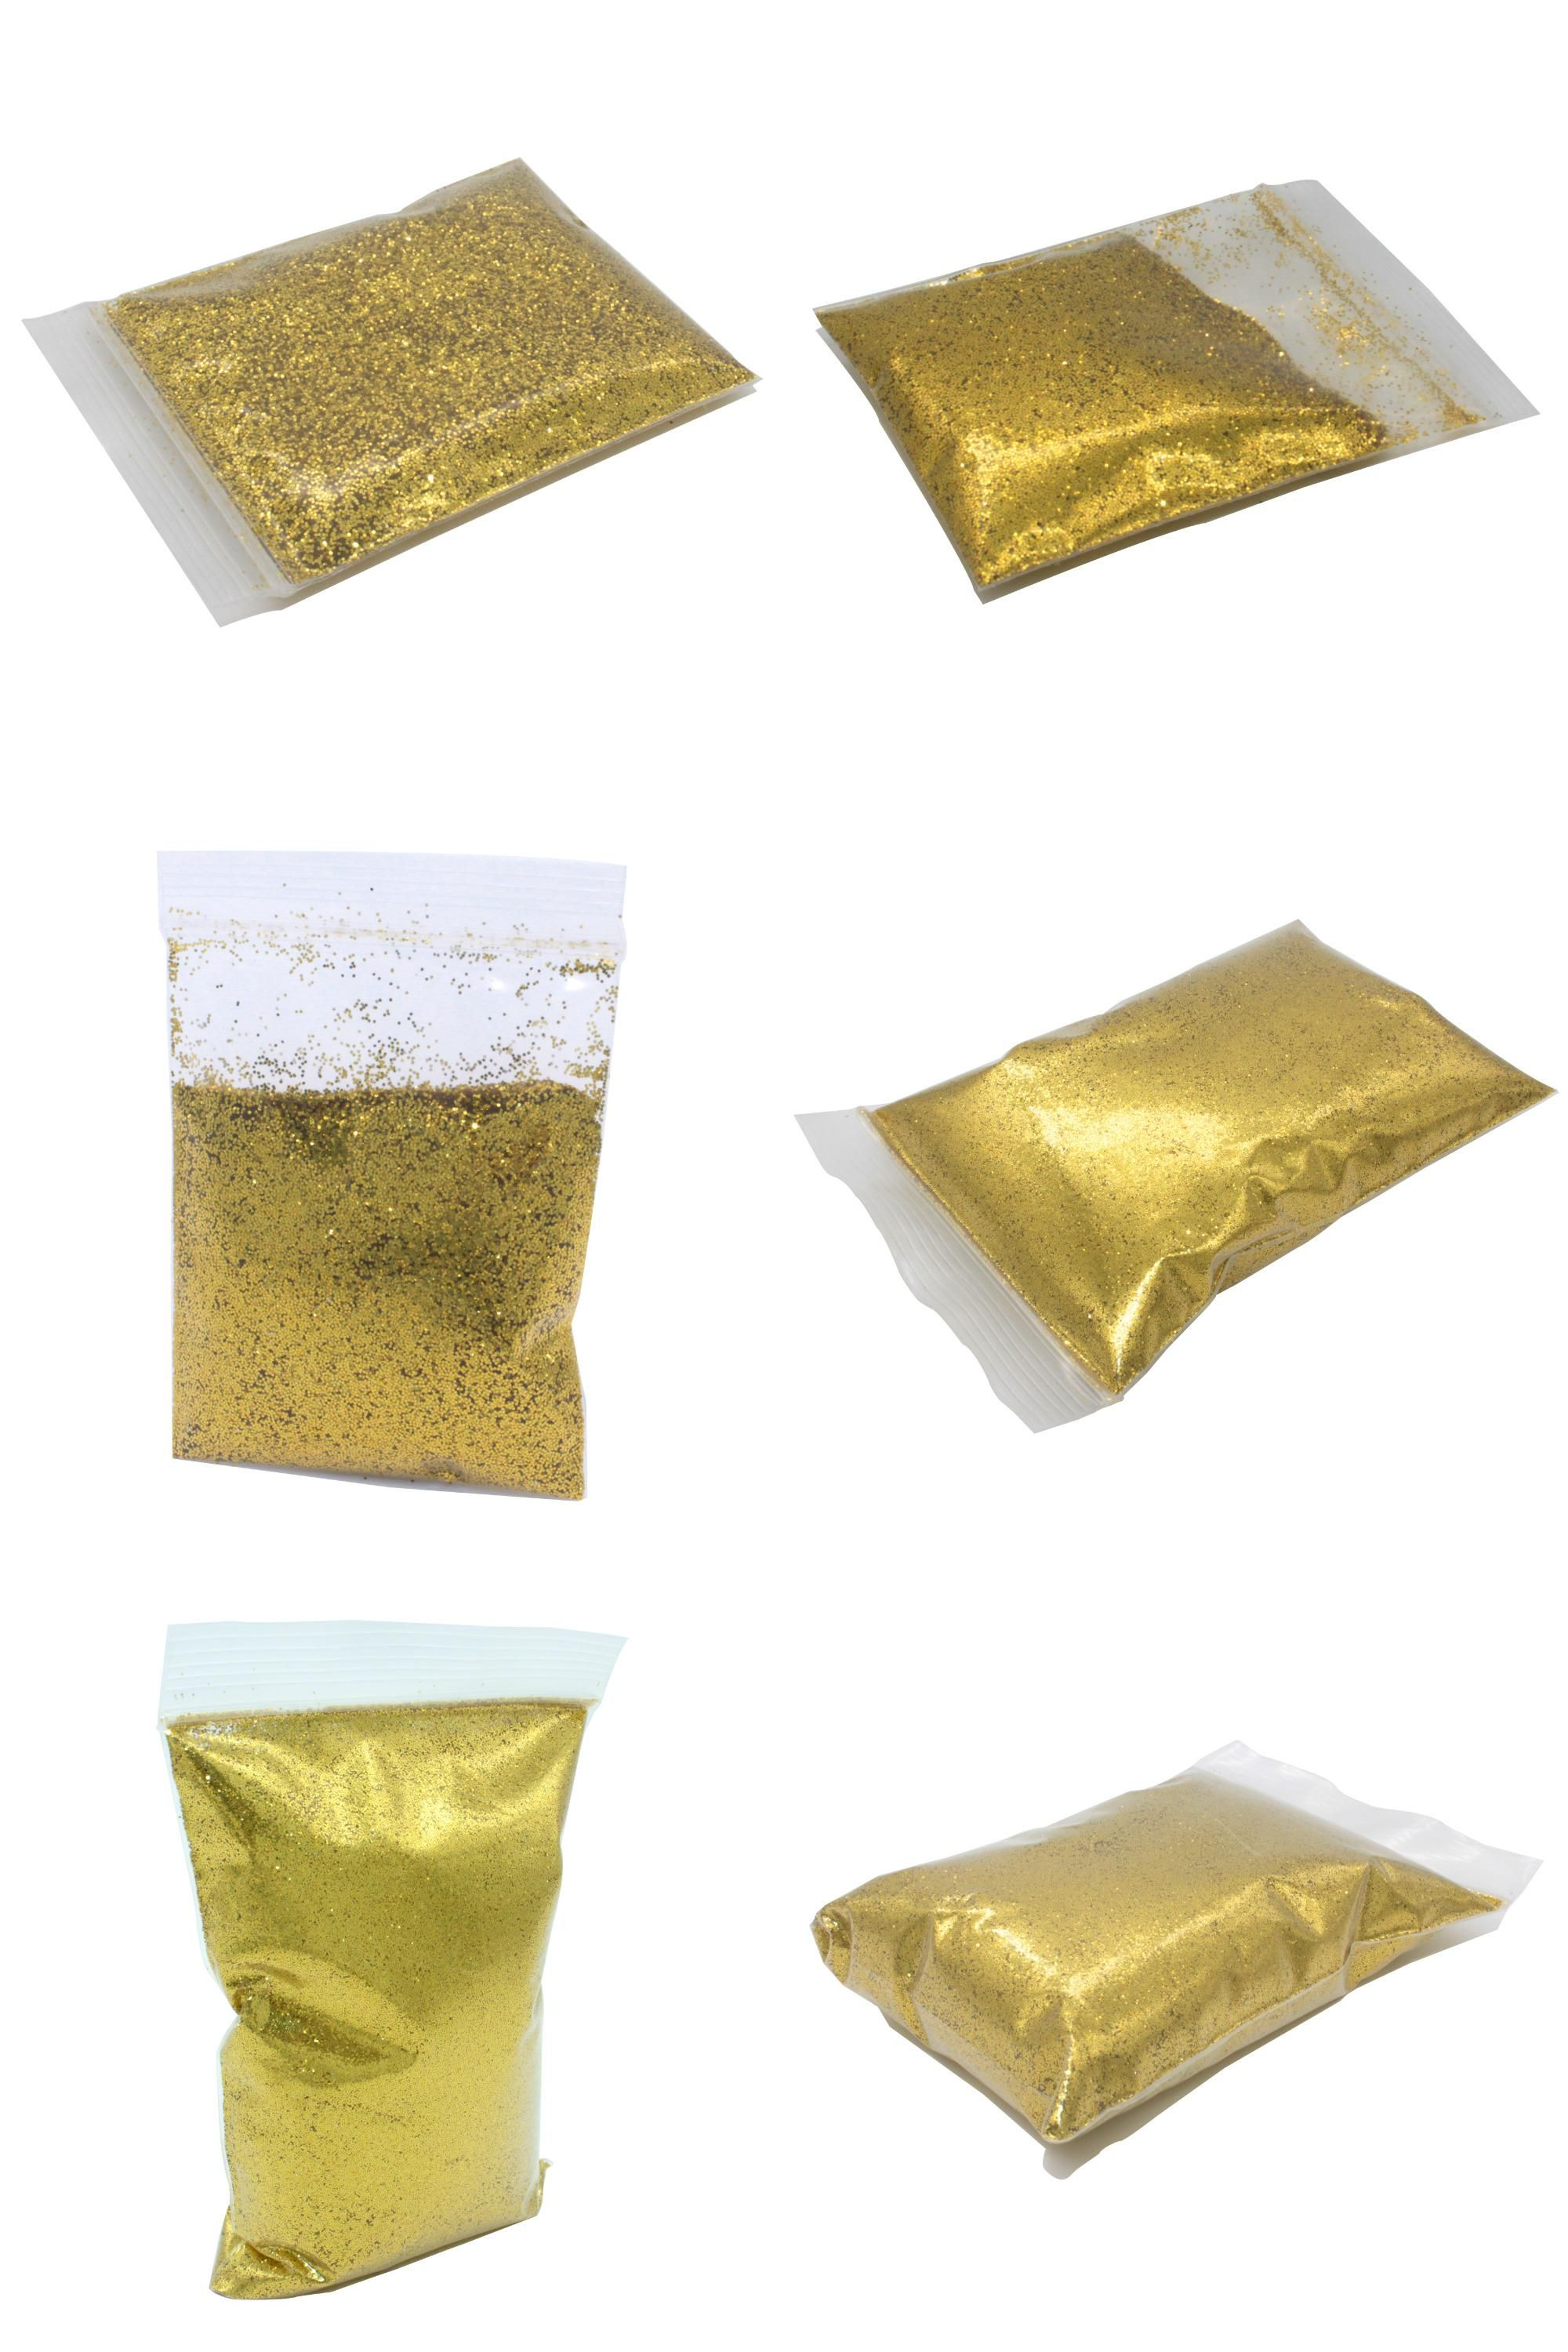 Visit to Buy] 10g / Bag Bling Tiny Sequin Sparkle Gold Silver ...